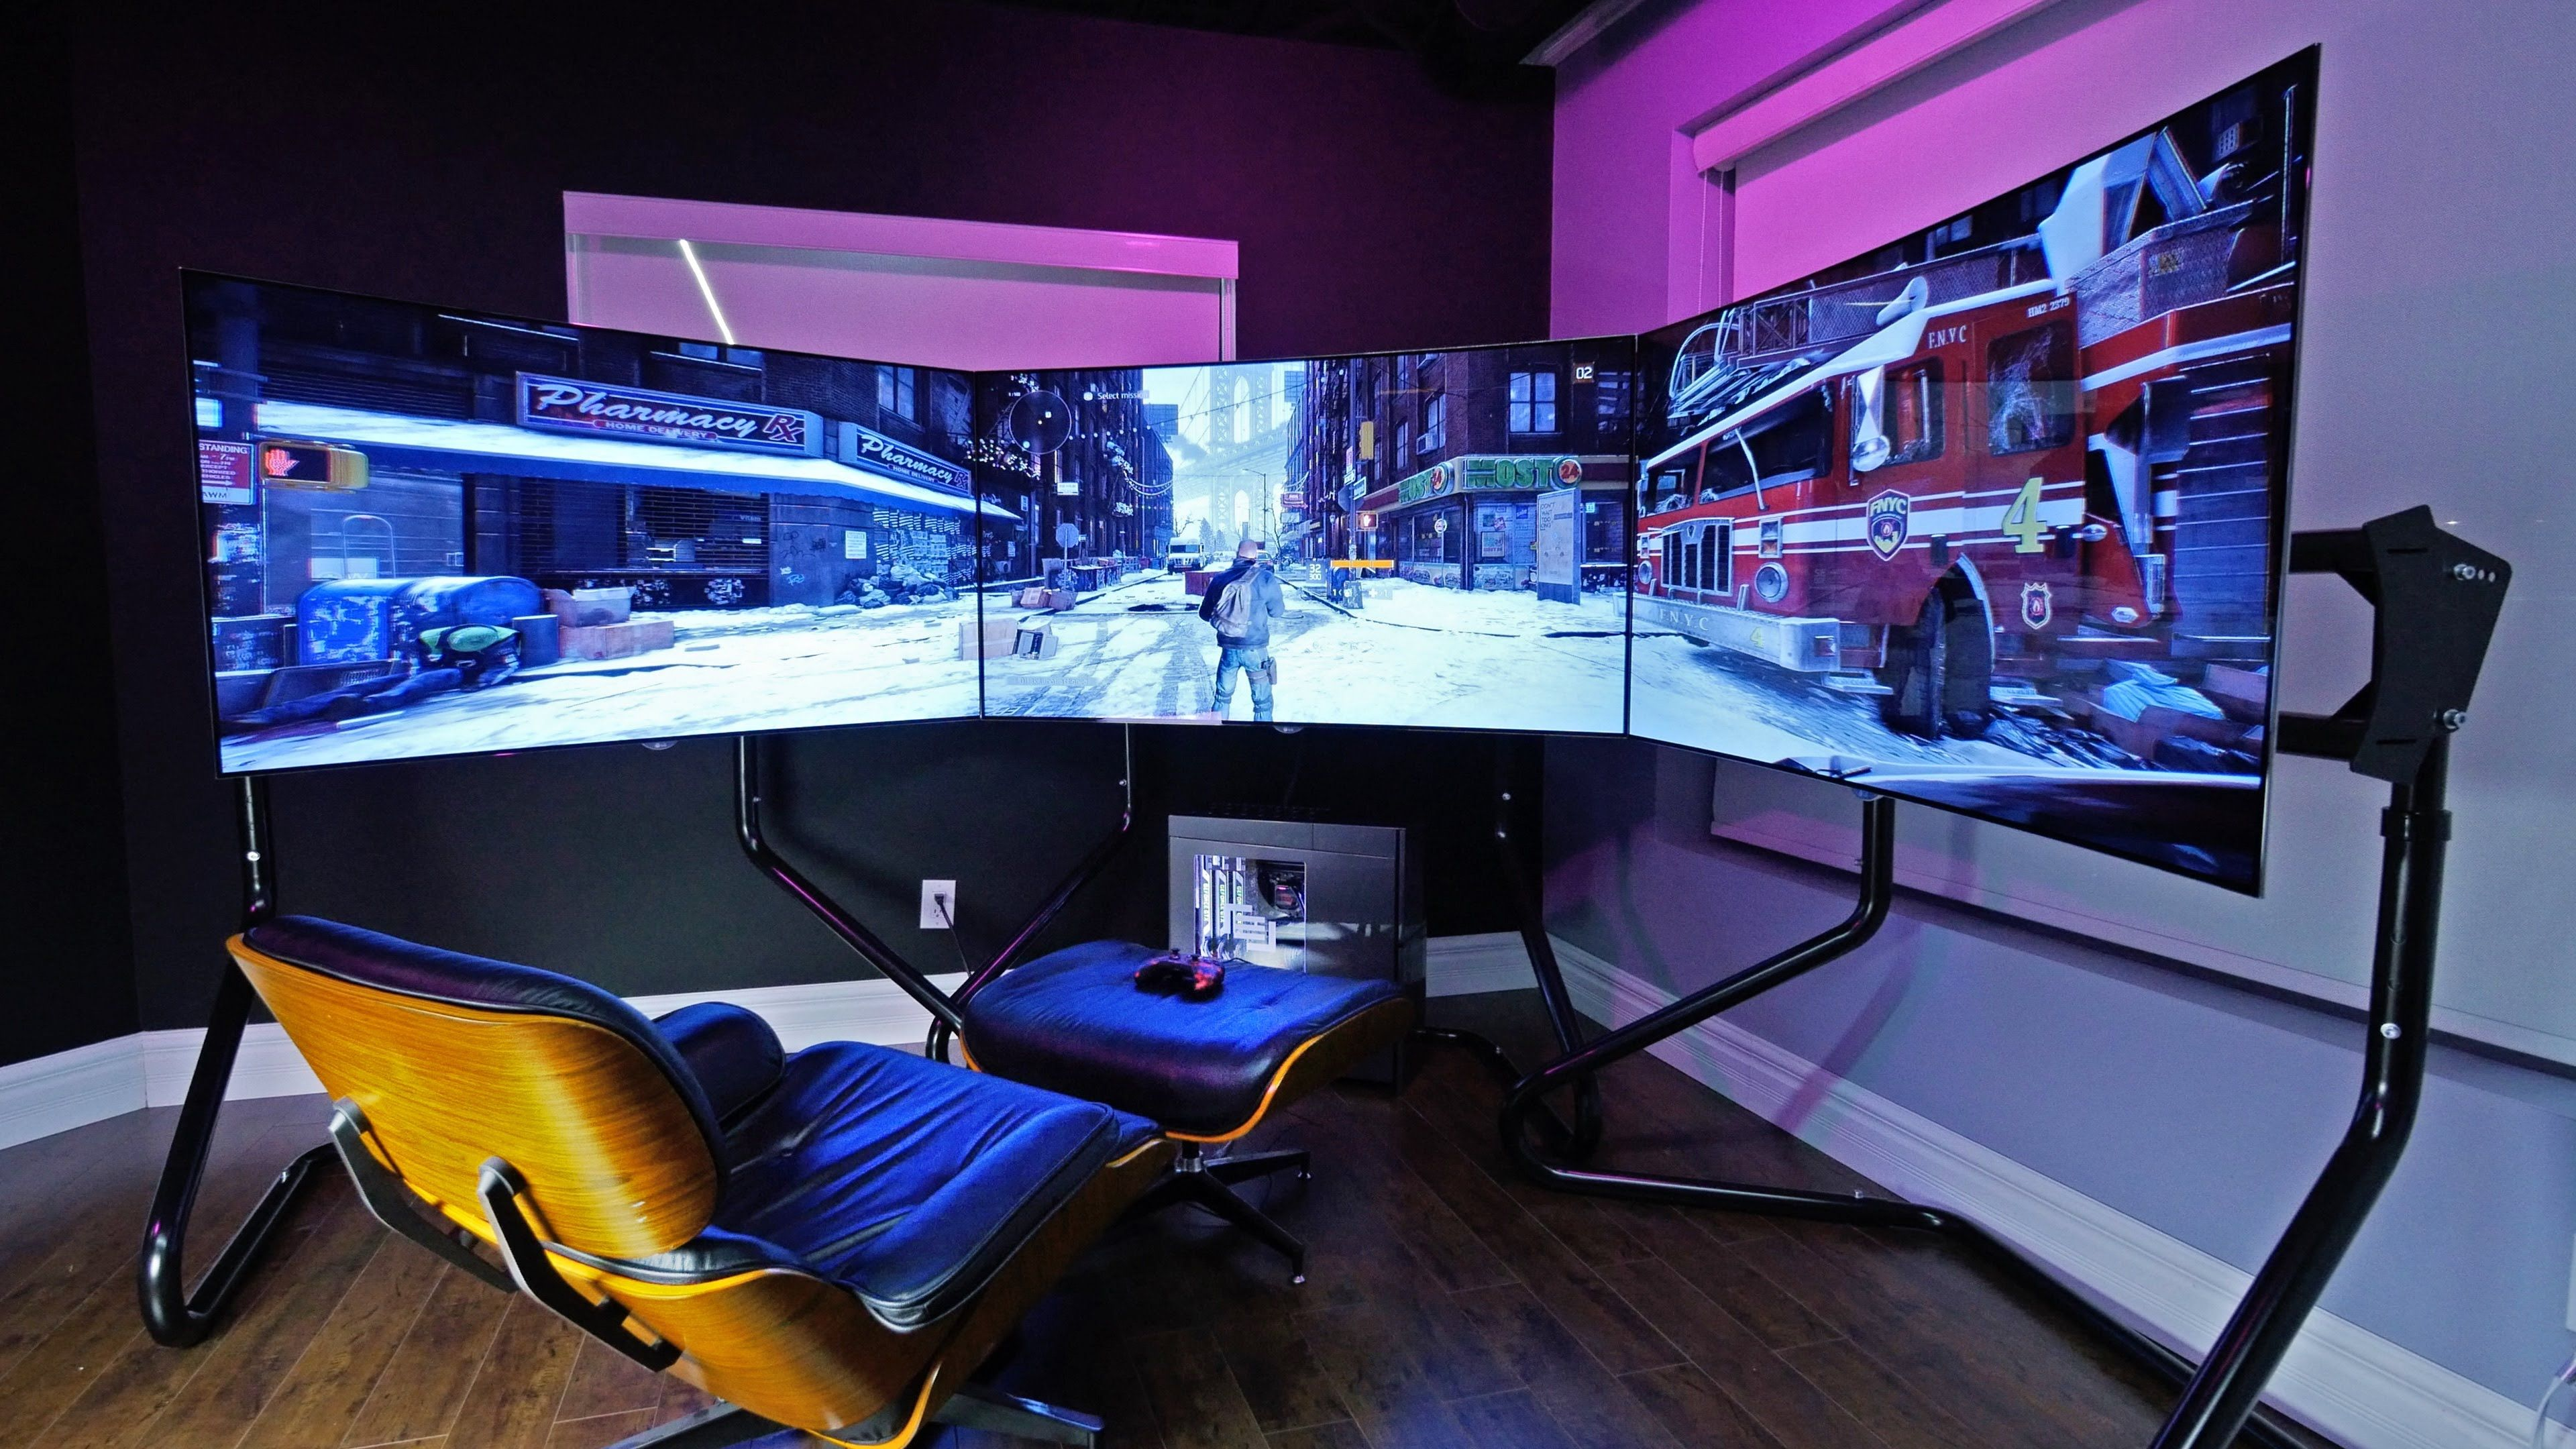 Ultimate Gaming Desk ultimate gaming setup - the division   video items - gadgets and